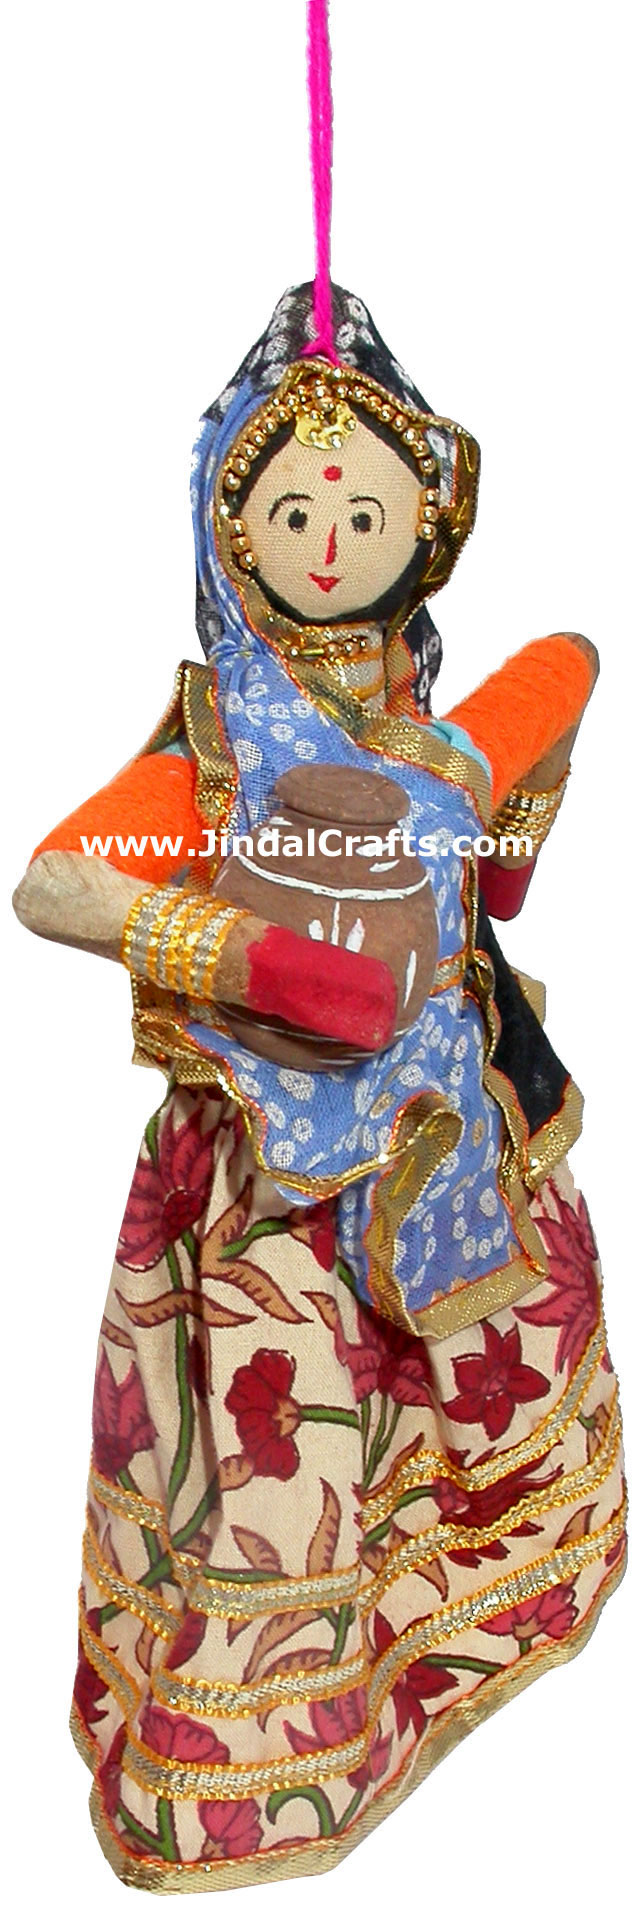 Wood Art Handmade Traditional Hanging Village Dolls Indian Art